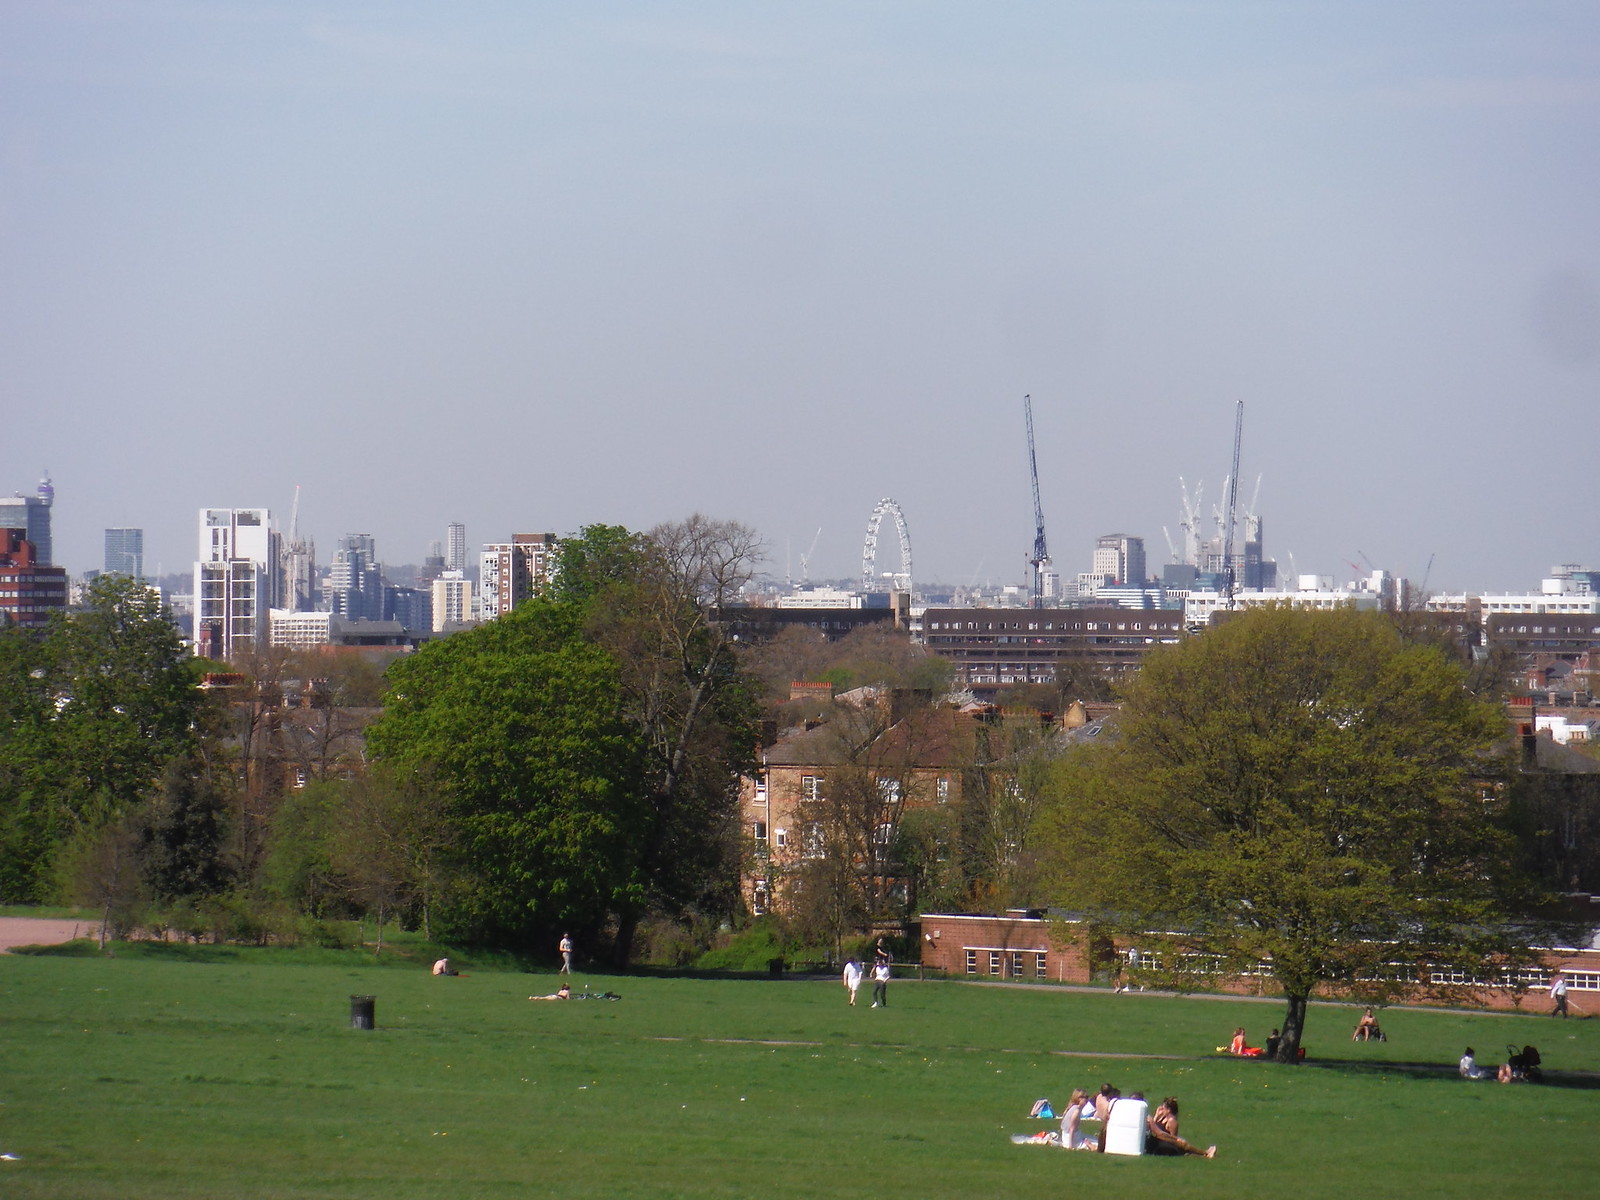 London Eye from Brockwell Park SWC Short Walk 39 - Brockwell Park (Herne Hill Circular or to Brixton)